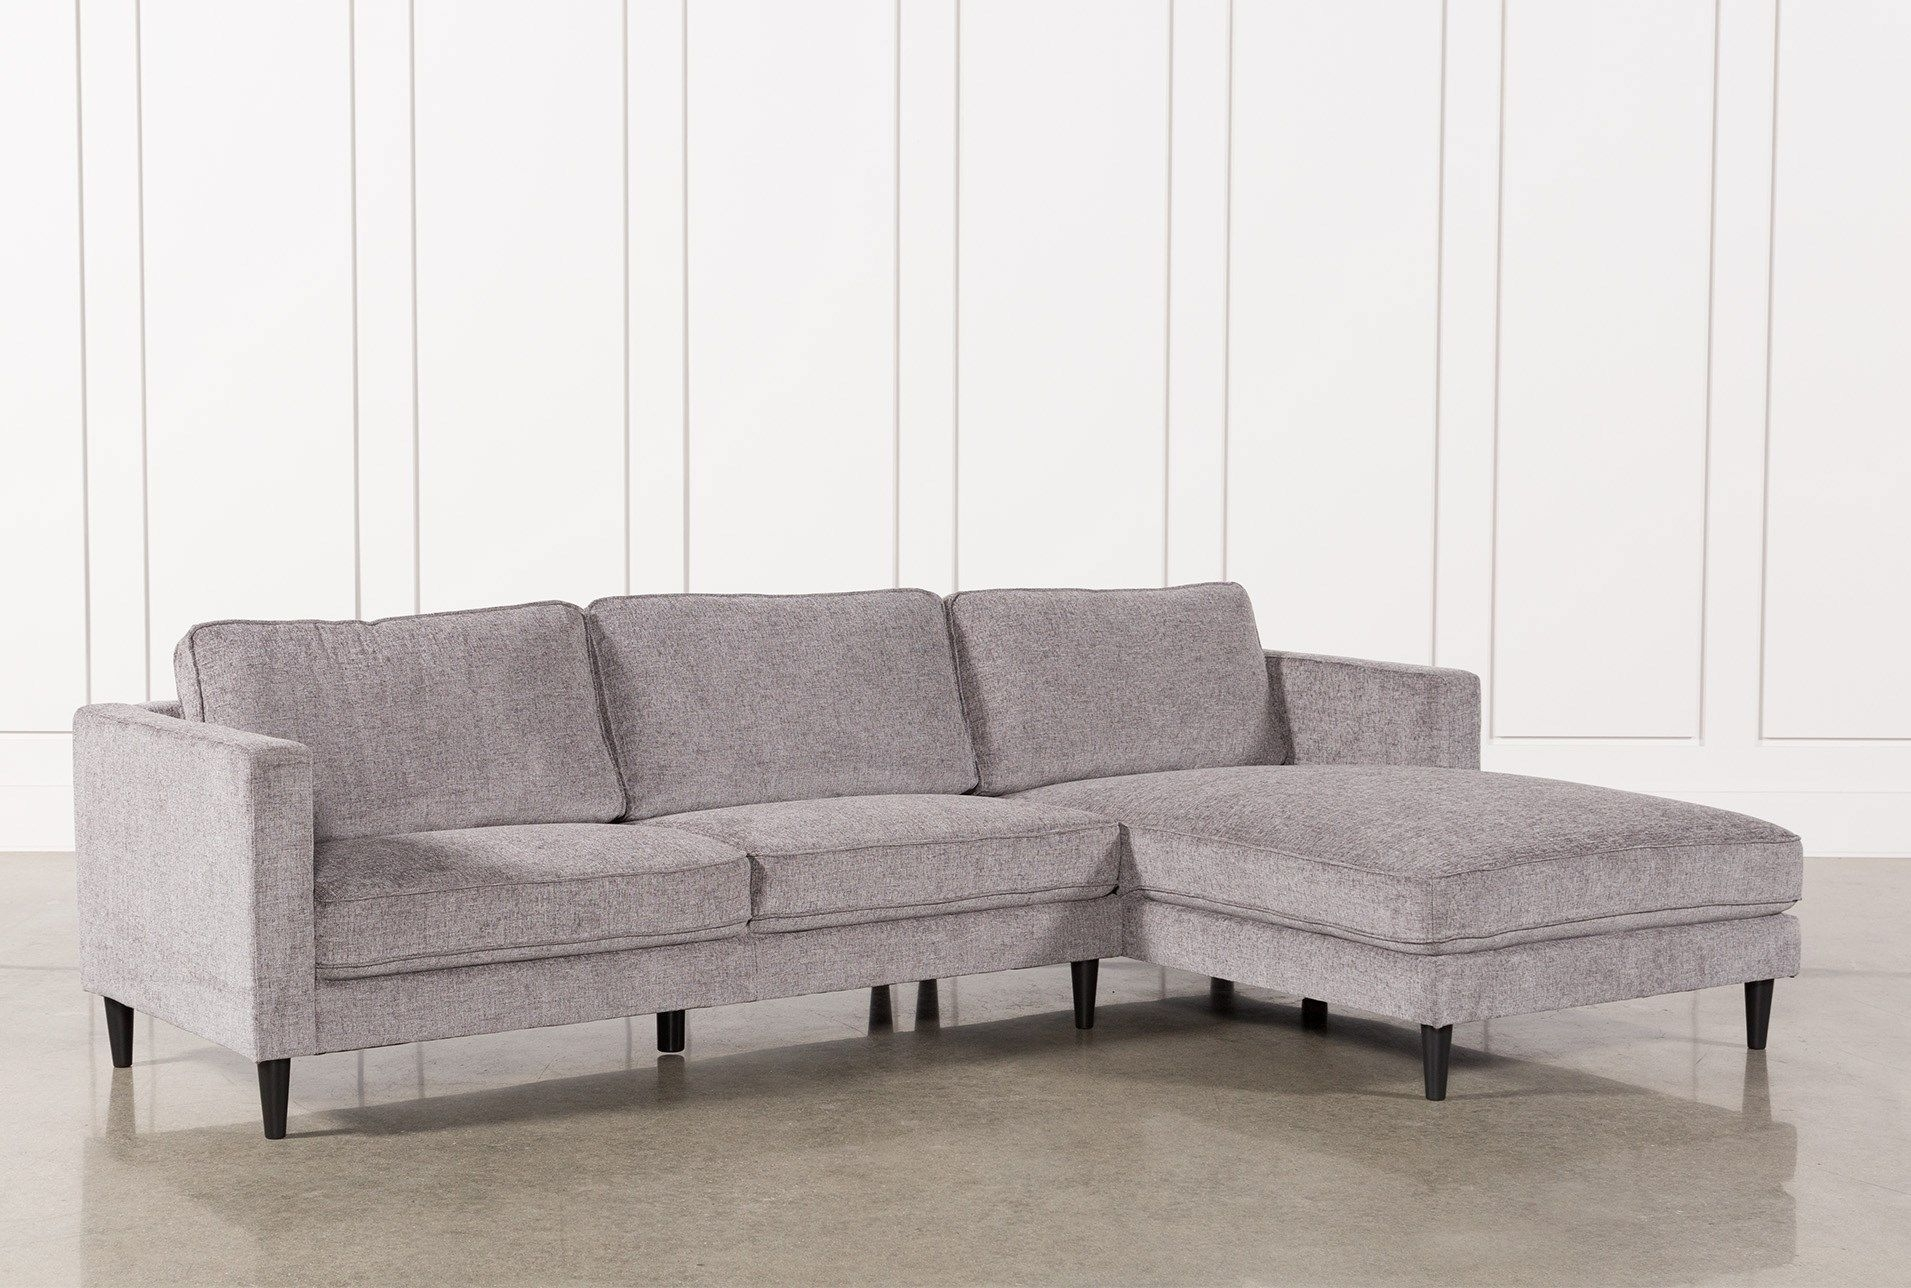 Cosmos Grey 2 Piece Sectional W/raf Chaise | Furniture | Pinterest With Regard To Aquarius Light Grey 2 Piece Sectionals With Laf Chaise (View 4 of 30)